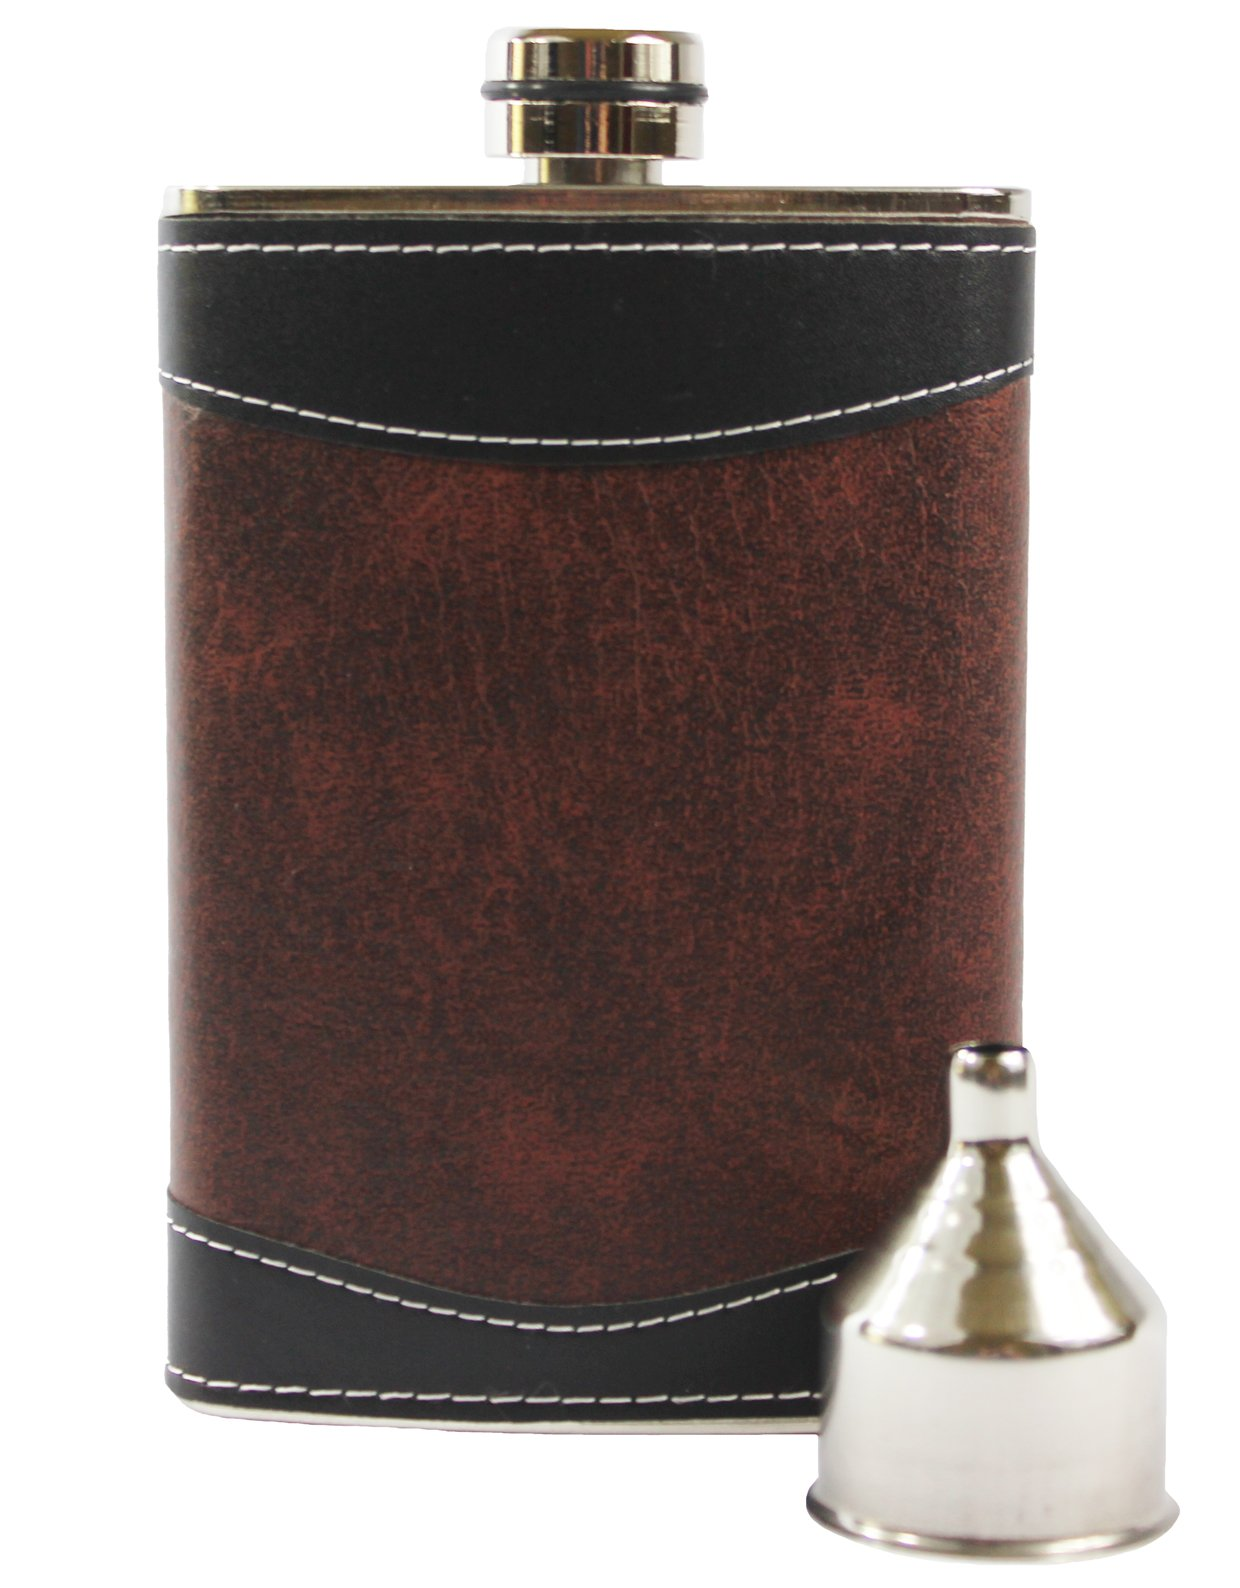 Primo Liquor Flasks 8oz Stainless Steel 18/8#304 Brown/Black PU Leather Premium/Heavy Duty Hip Set - Includes Funnel and Gift Box